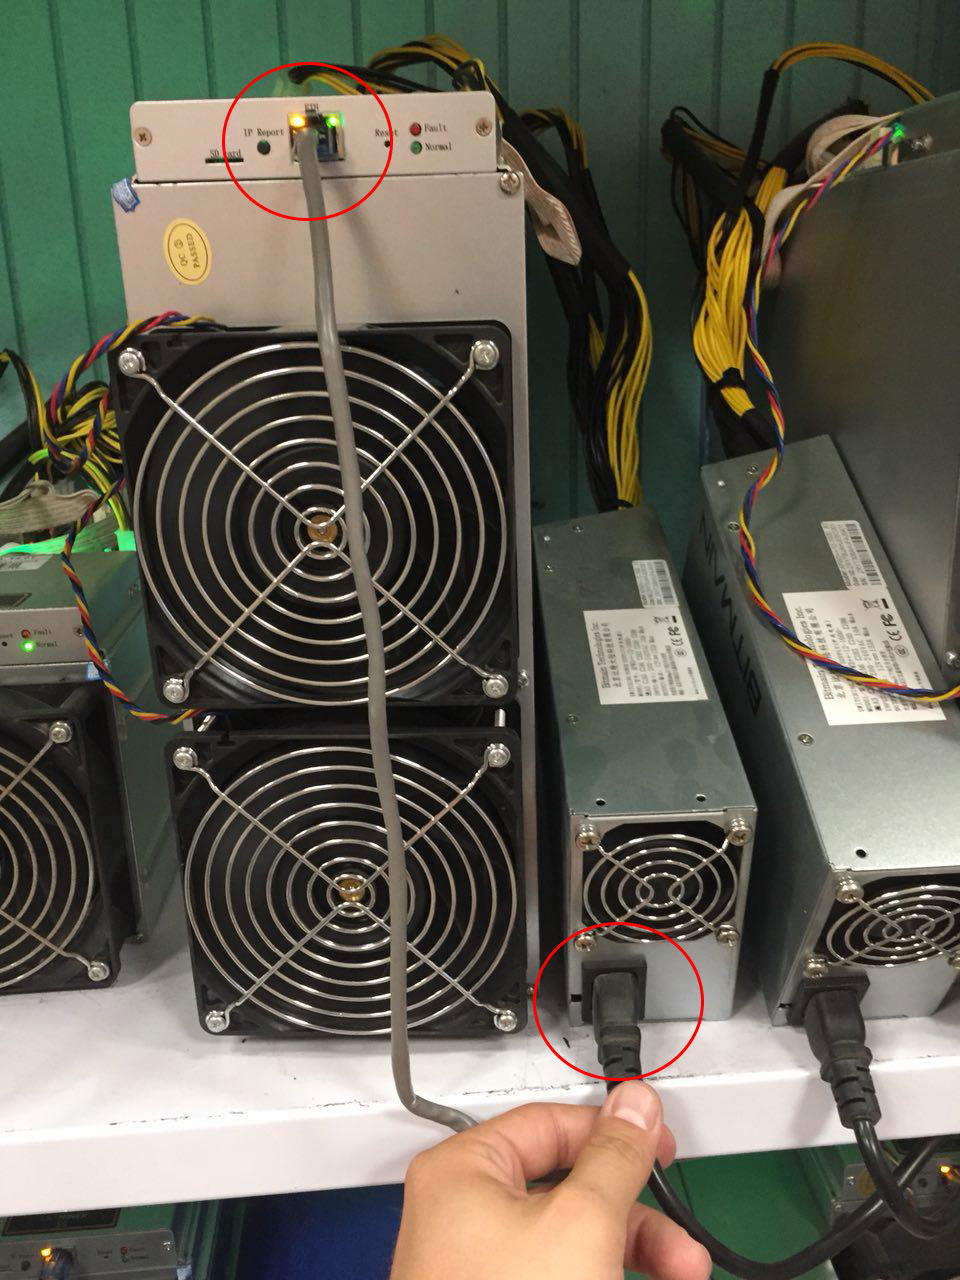 Ethereum Classic Mining: Detailed Guide on How to Mine ETC